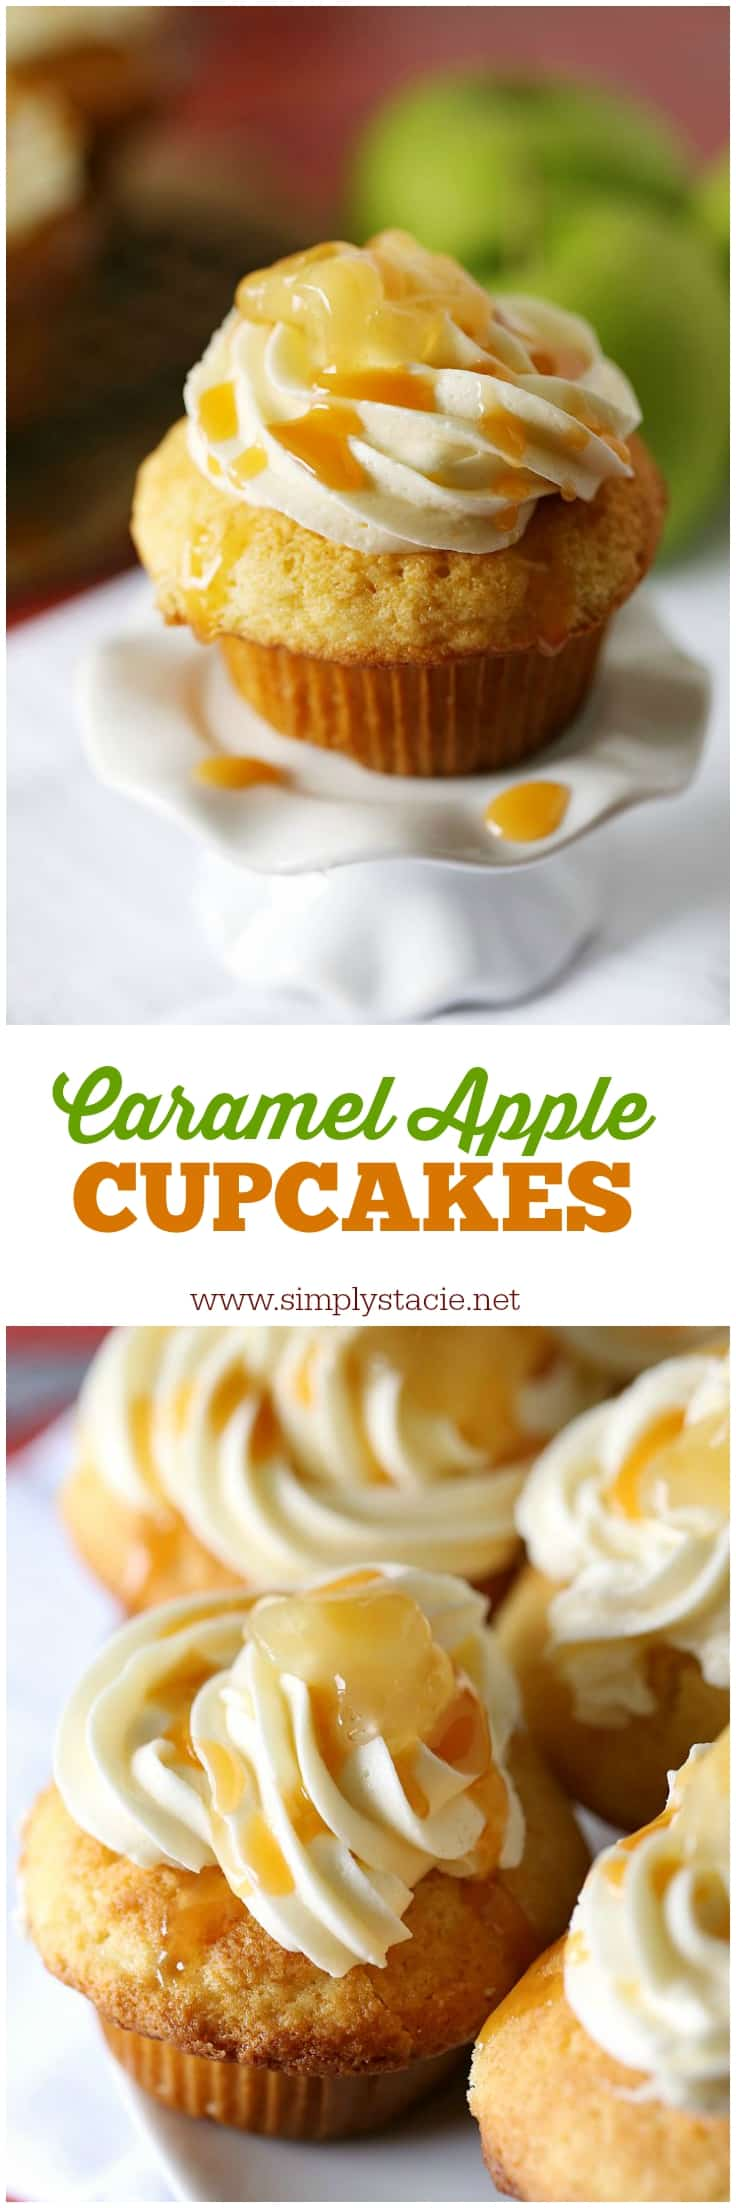 Caramel Apple Cupcakes - Every bite is sweeter than the next! This cupcake recipe will soon become a favourite treat.